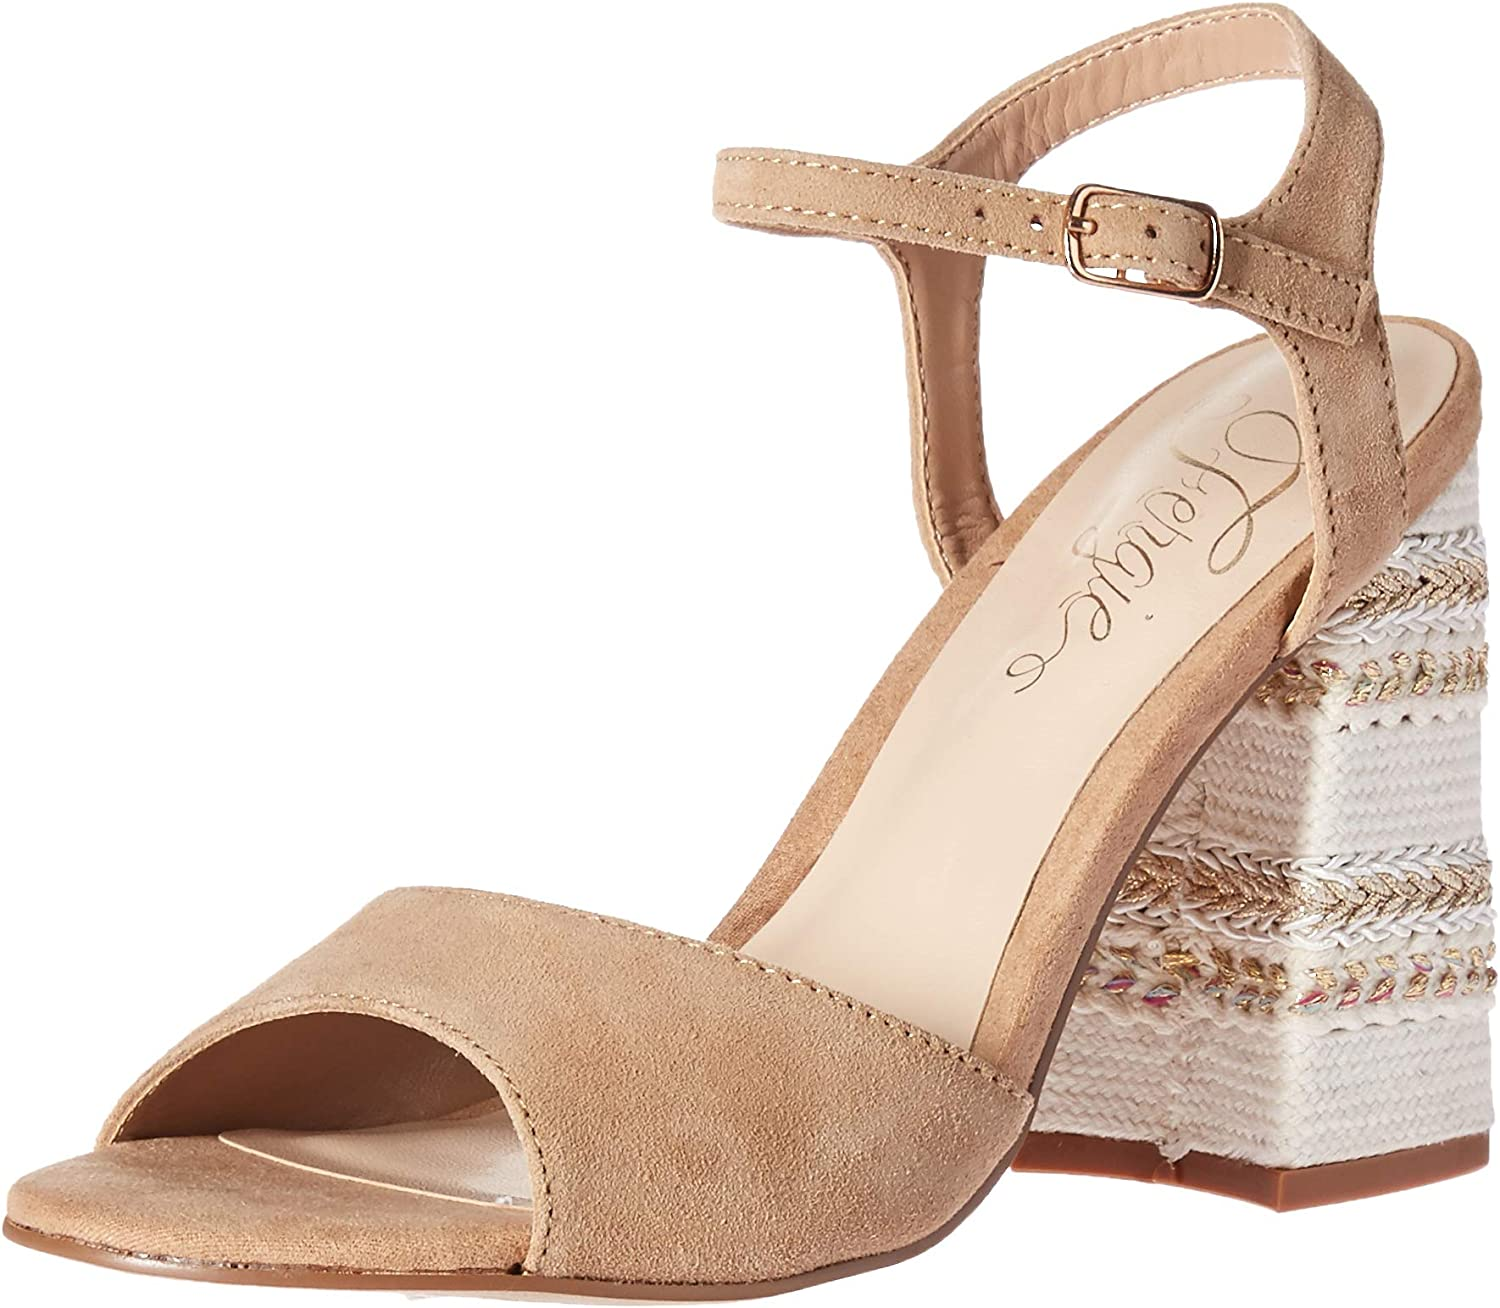 Fergie Women's Ginelle Max 78% OFF Heeled Max 65% OFF Sandal